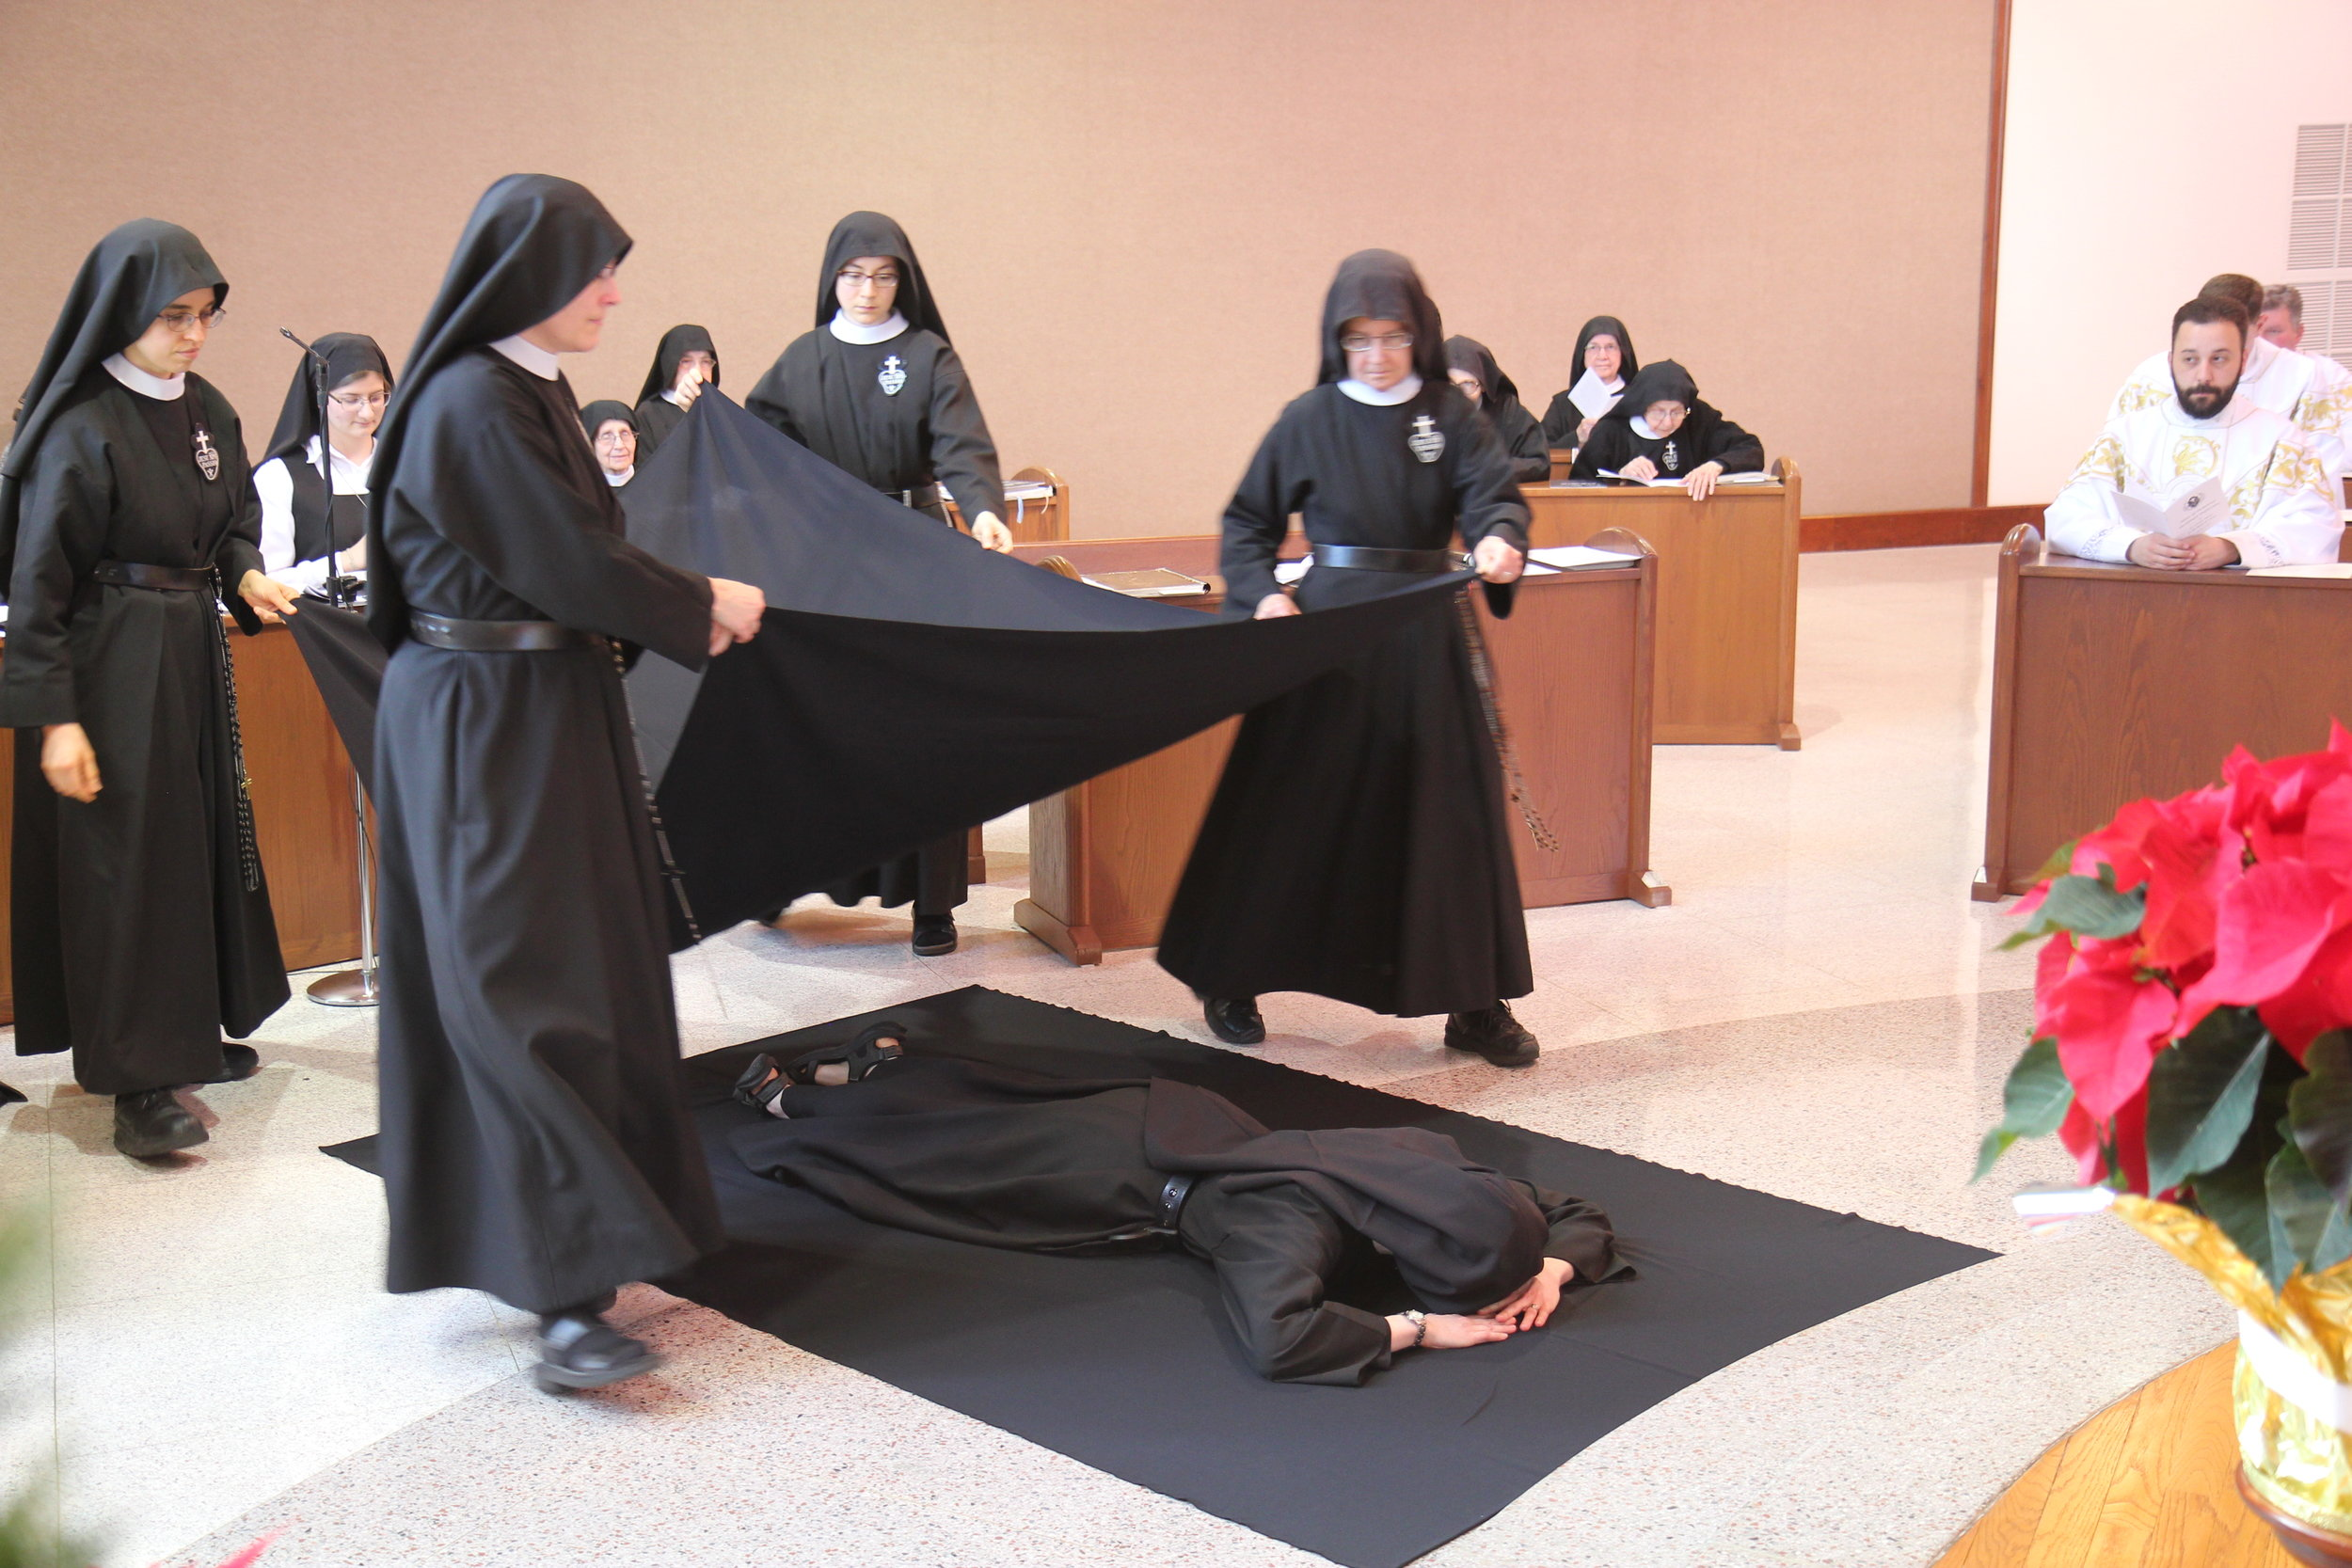 While she lies before the altar, the nuns and guests join in singing the Litany of the Saints, invoking their aid for Sister Cecilia Maria as she prepares for her perpetual consecration to Christ.